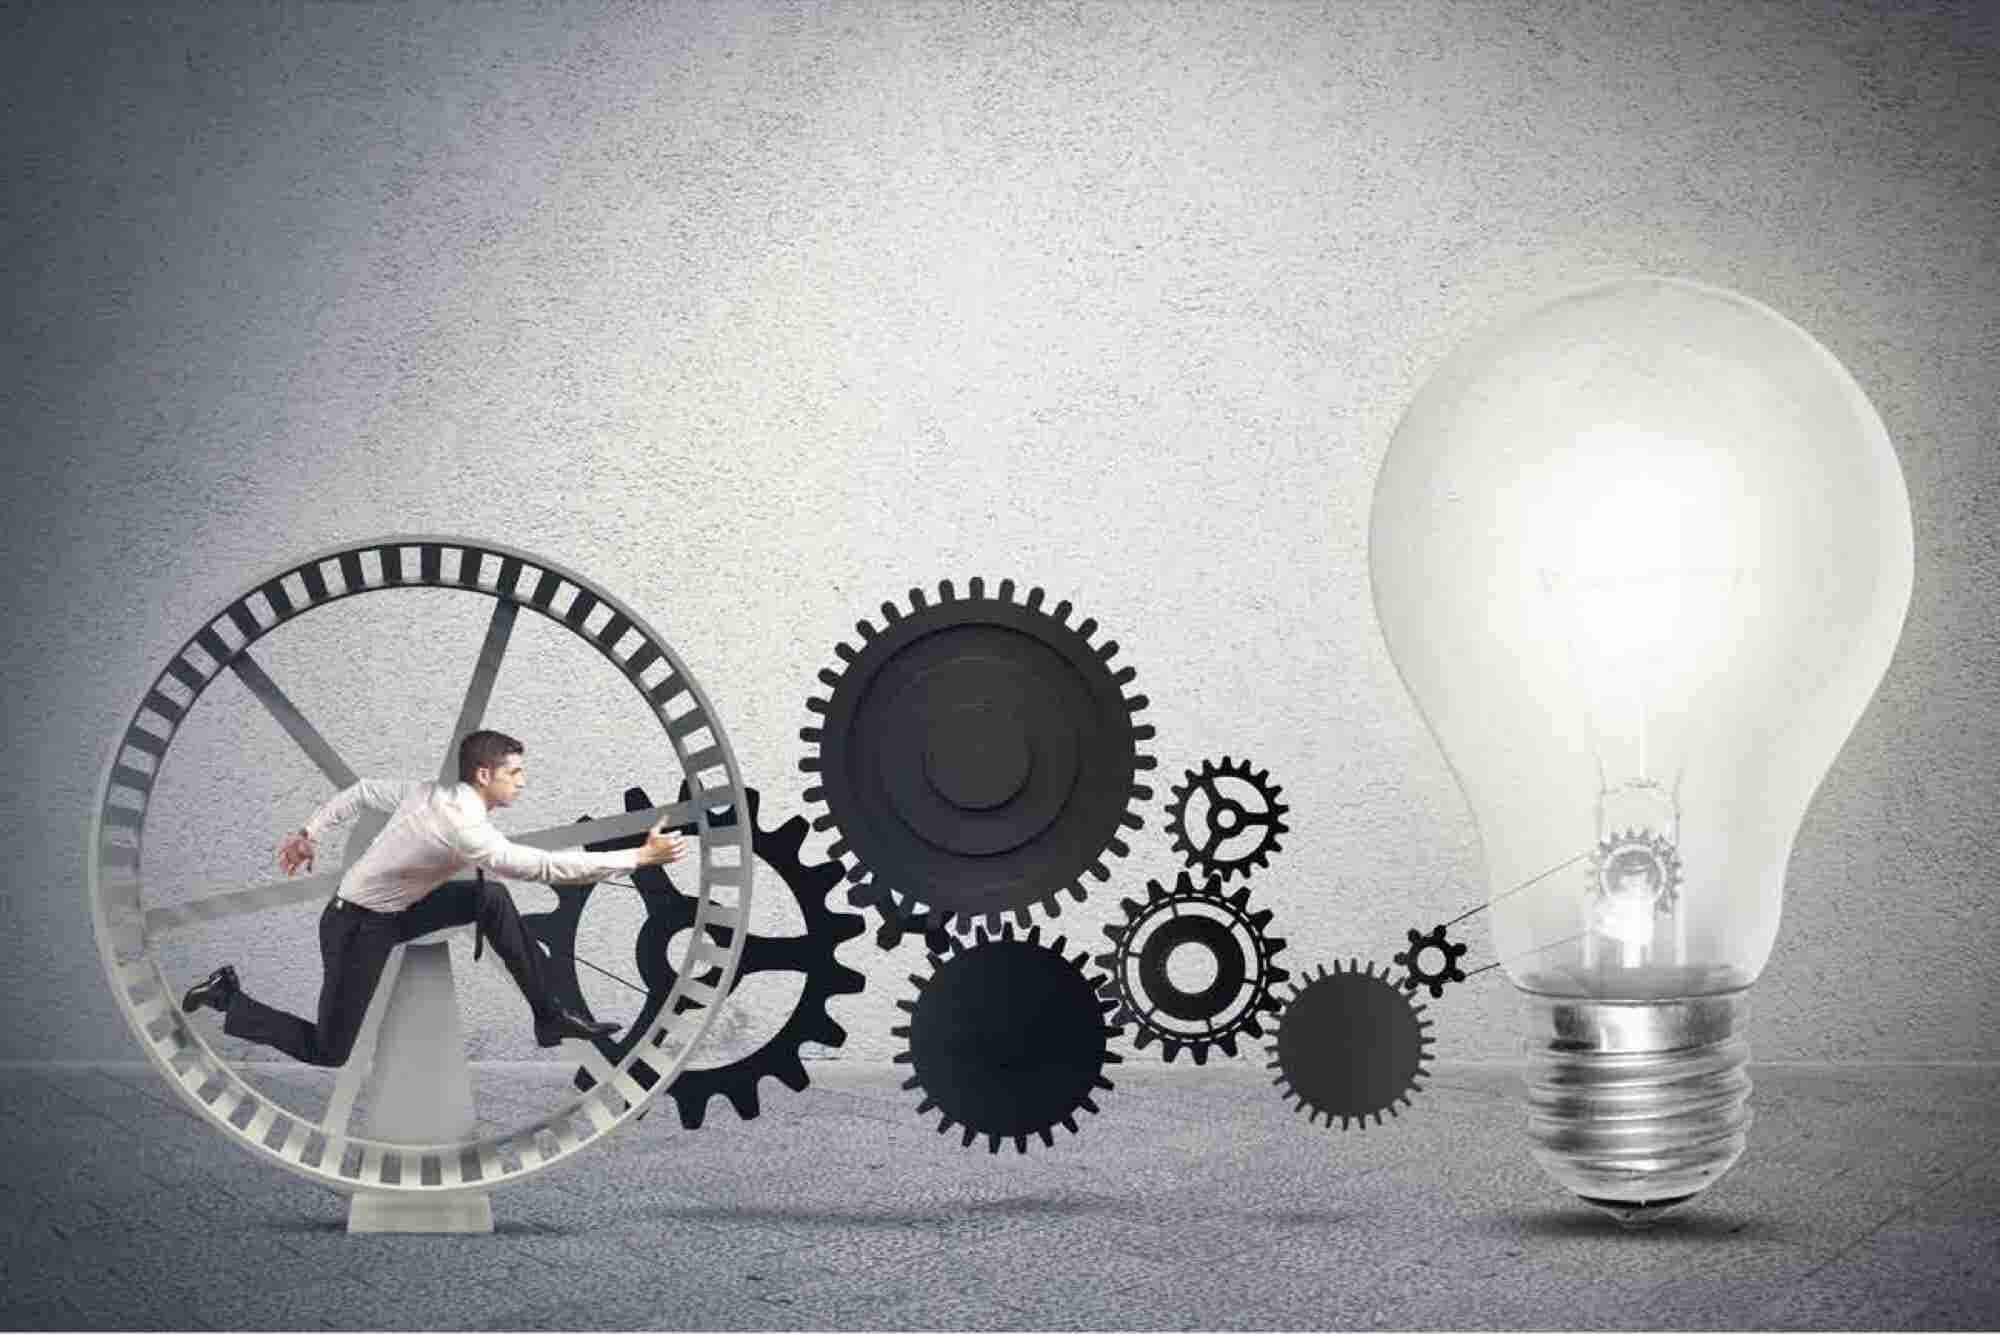 'Solving common man's problems' – A cliché working well for startups